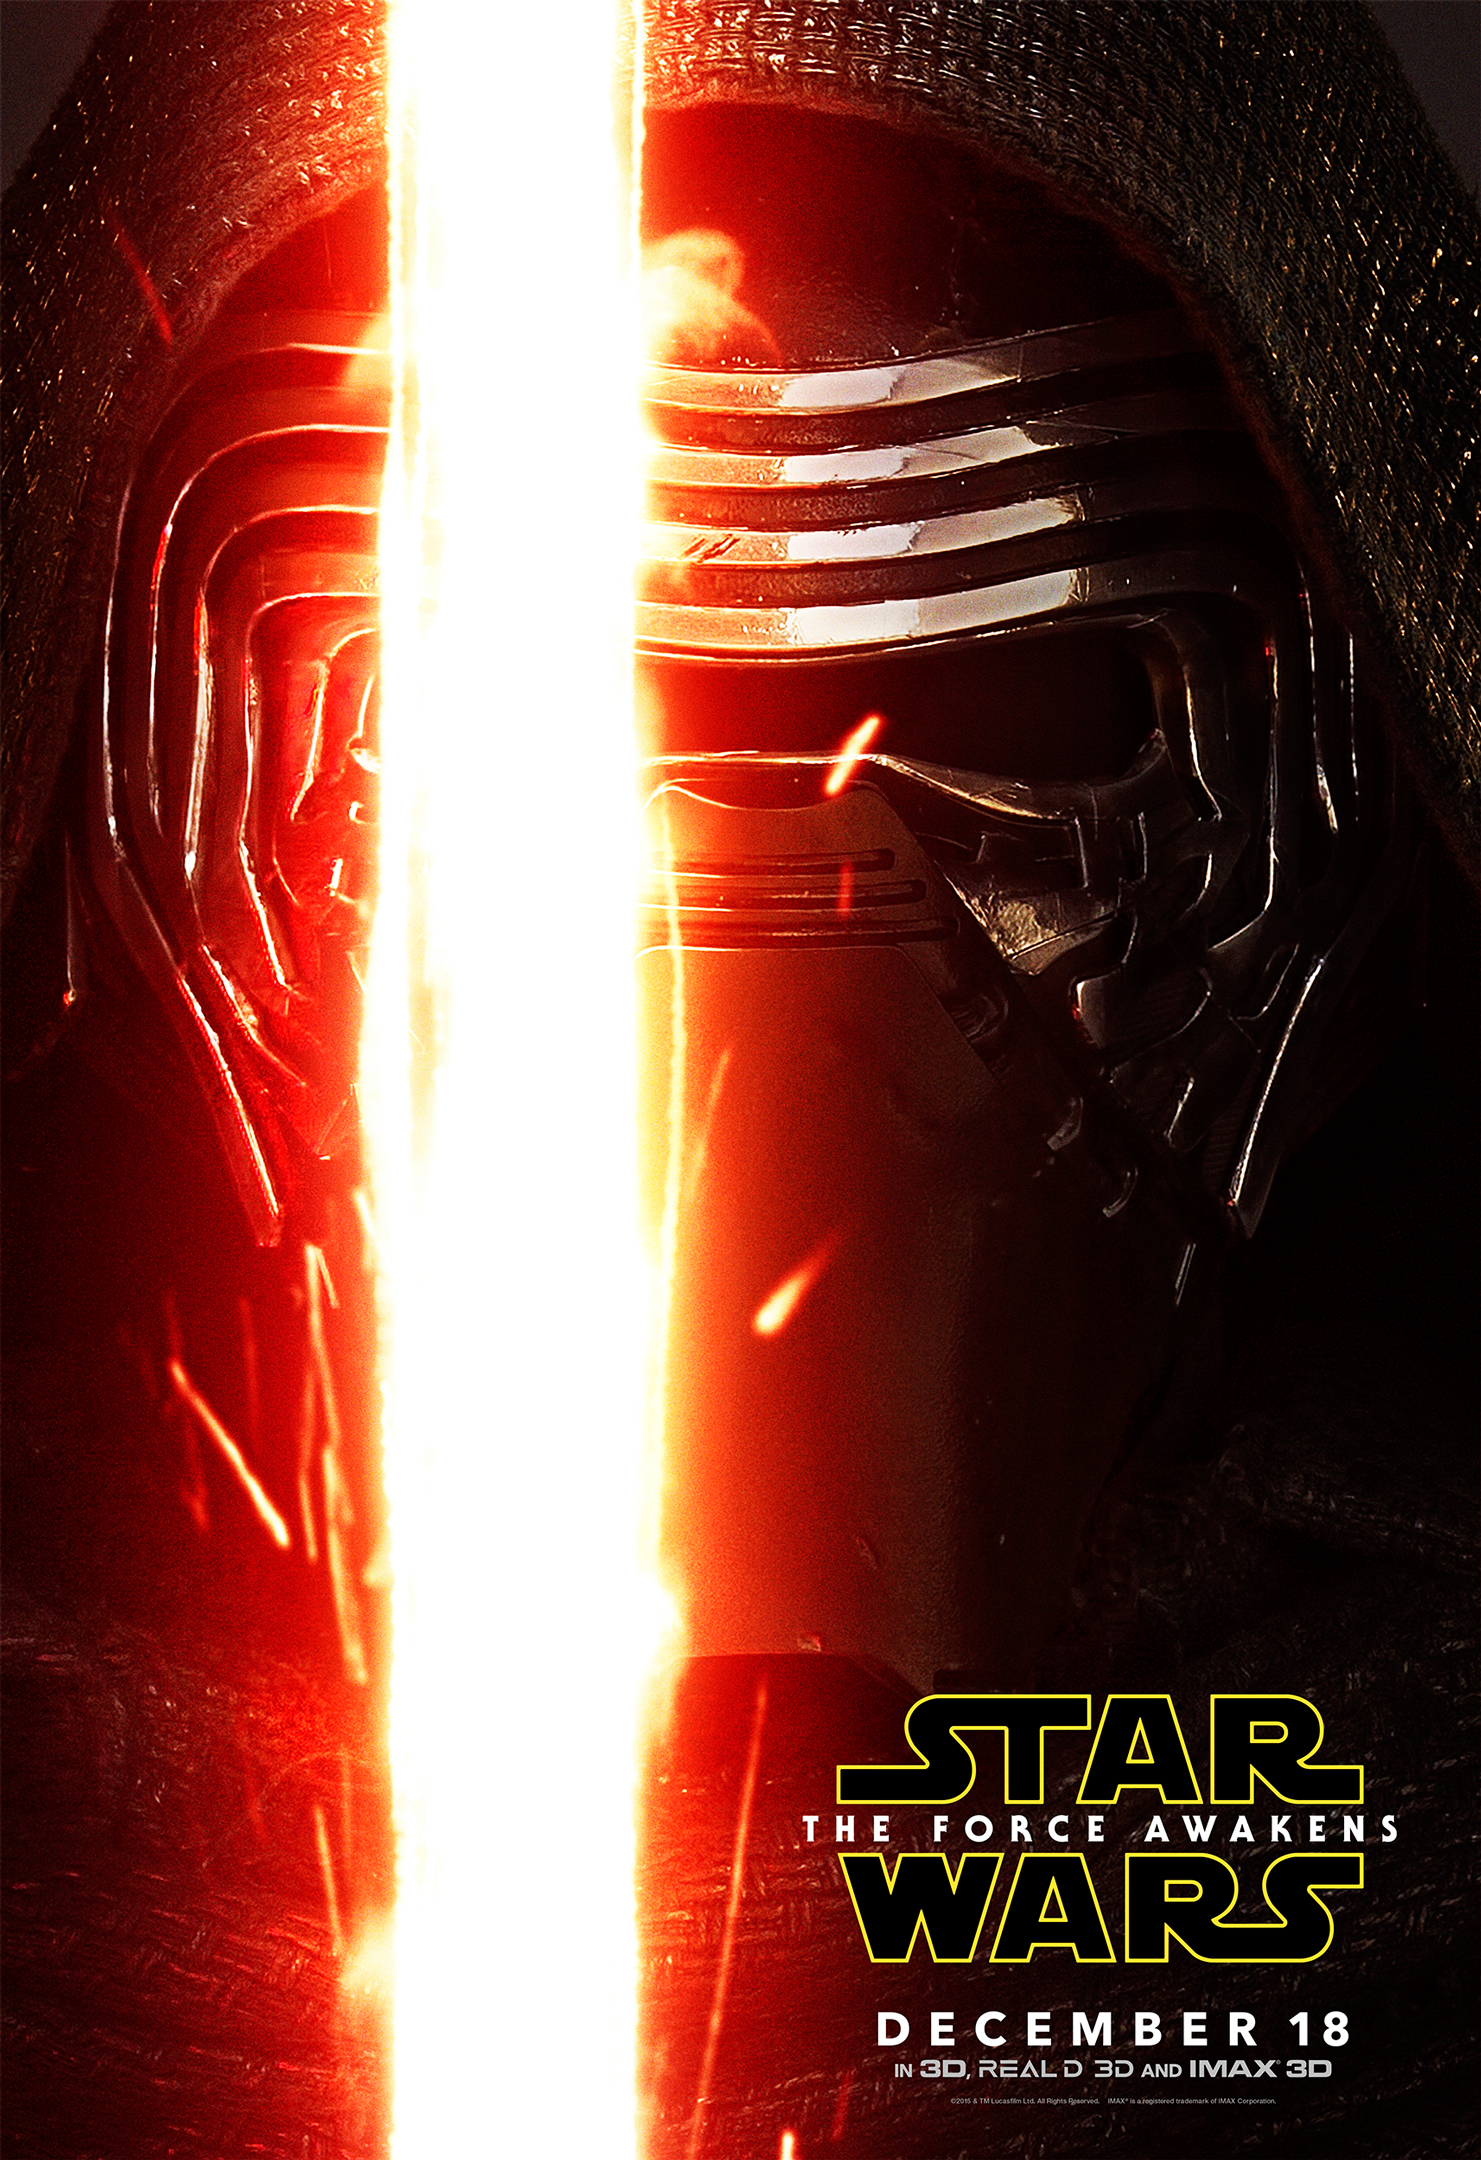 star wars the force awakens character posters revealed starwars com